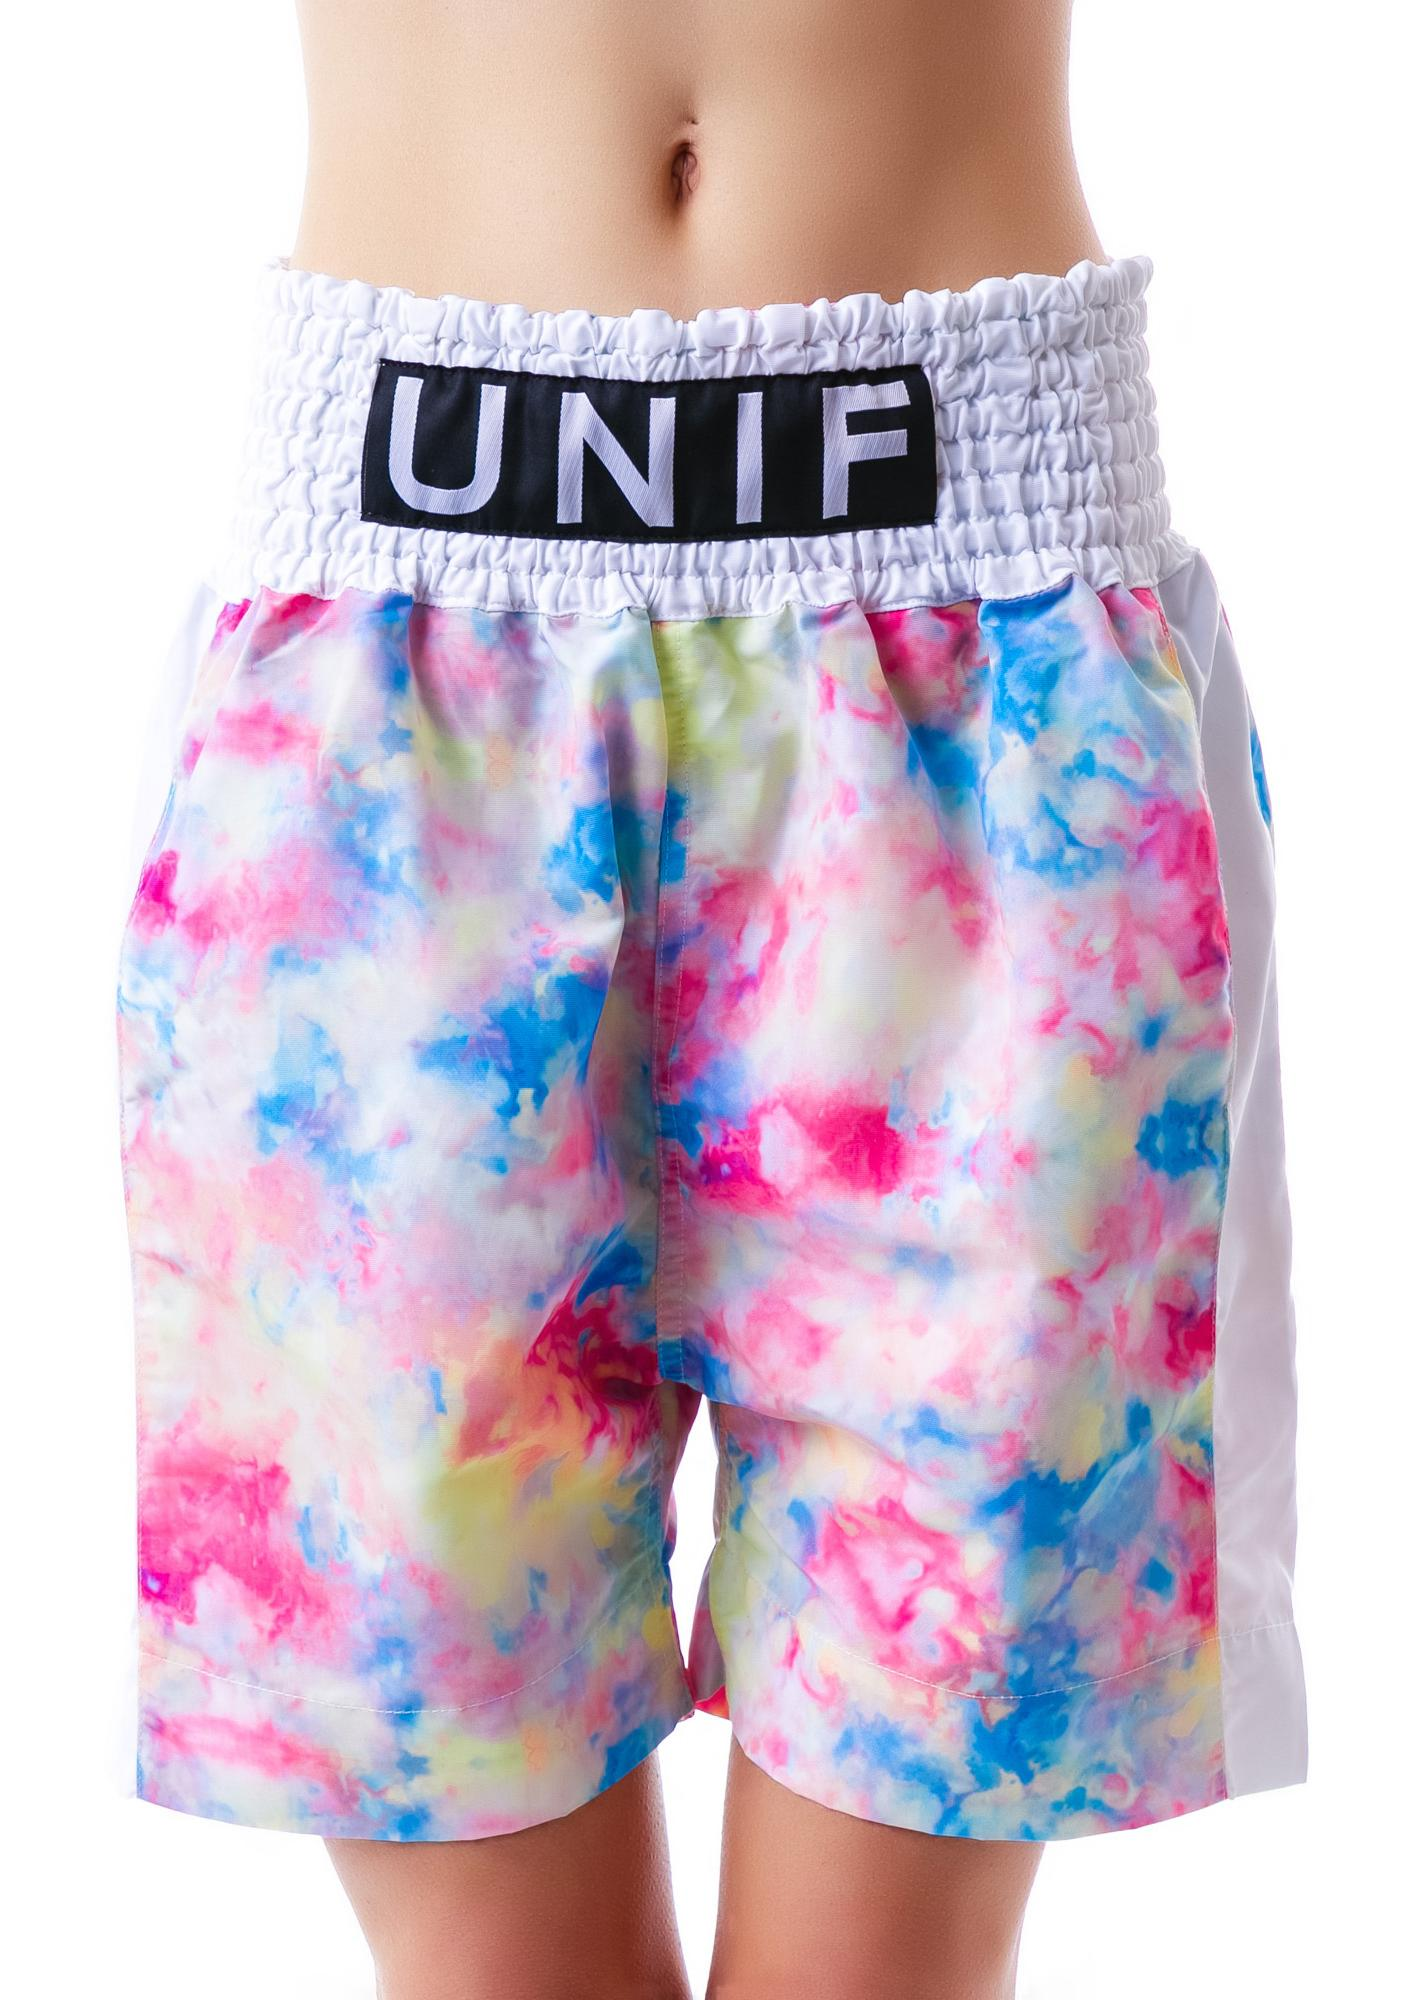 UNIF Rink Shorts